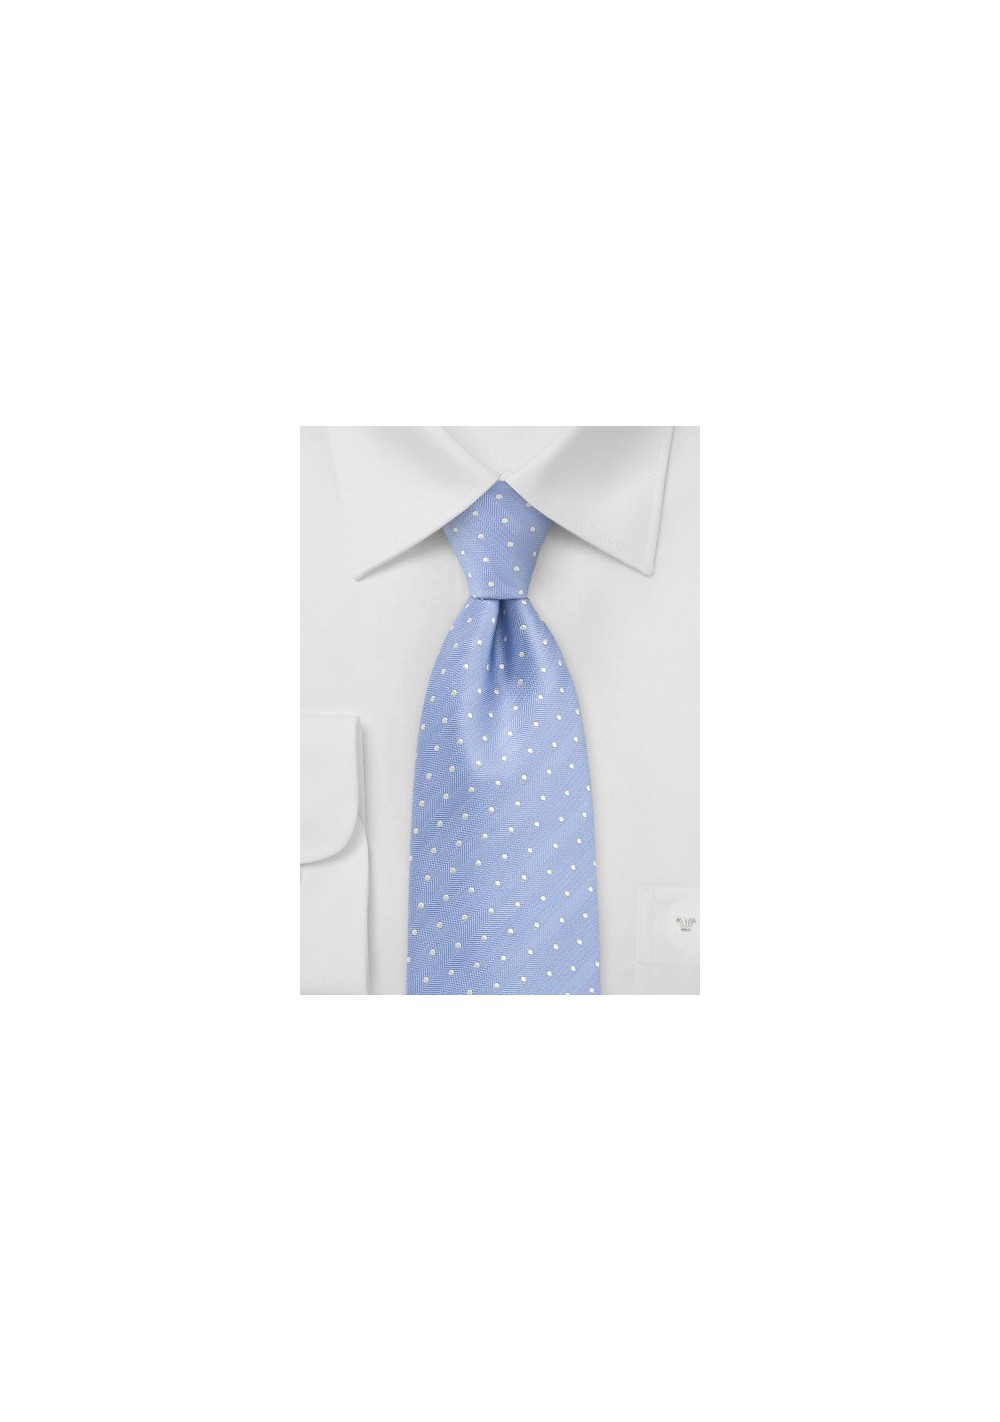 Soft Blue Polka Dot Tie in XL